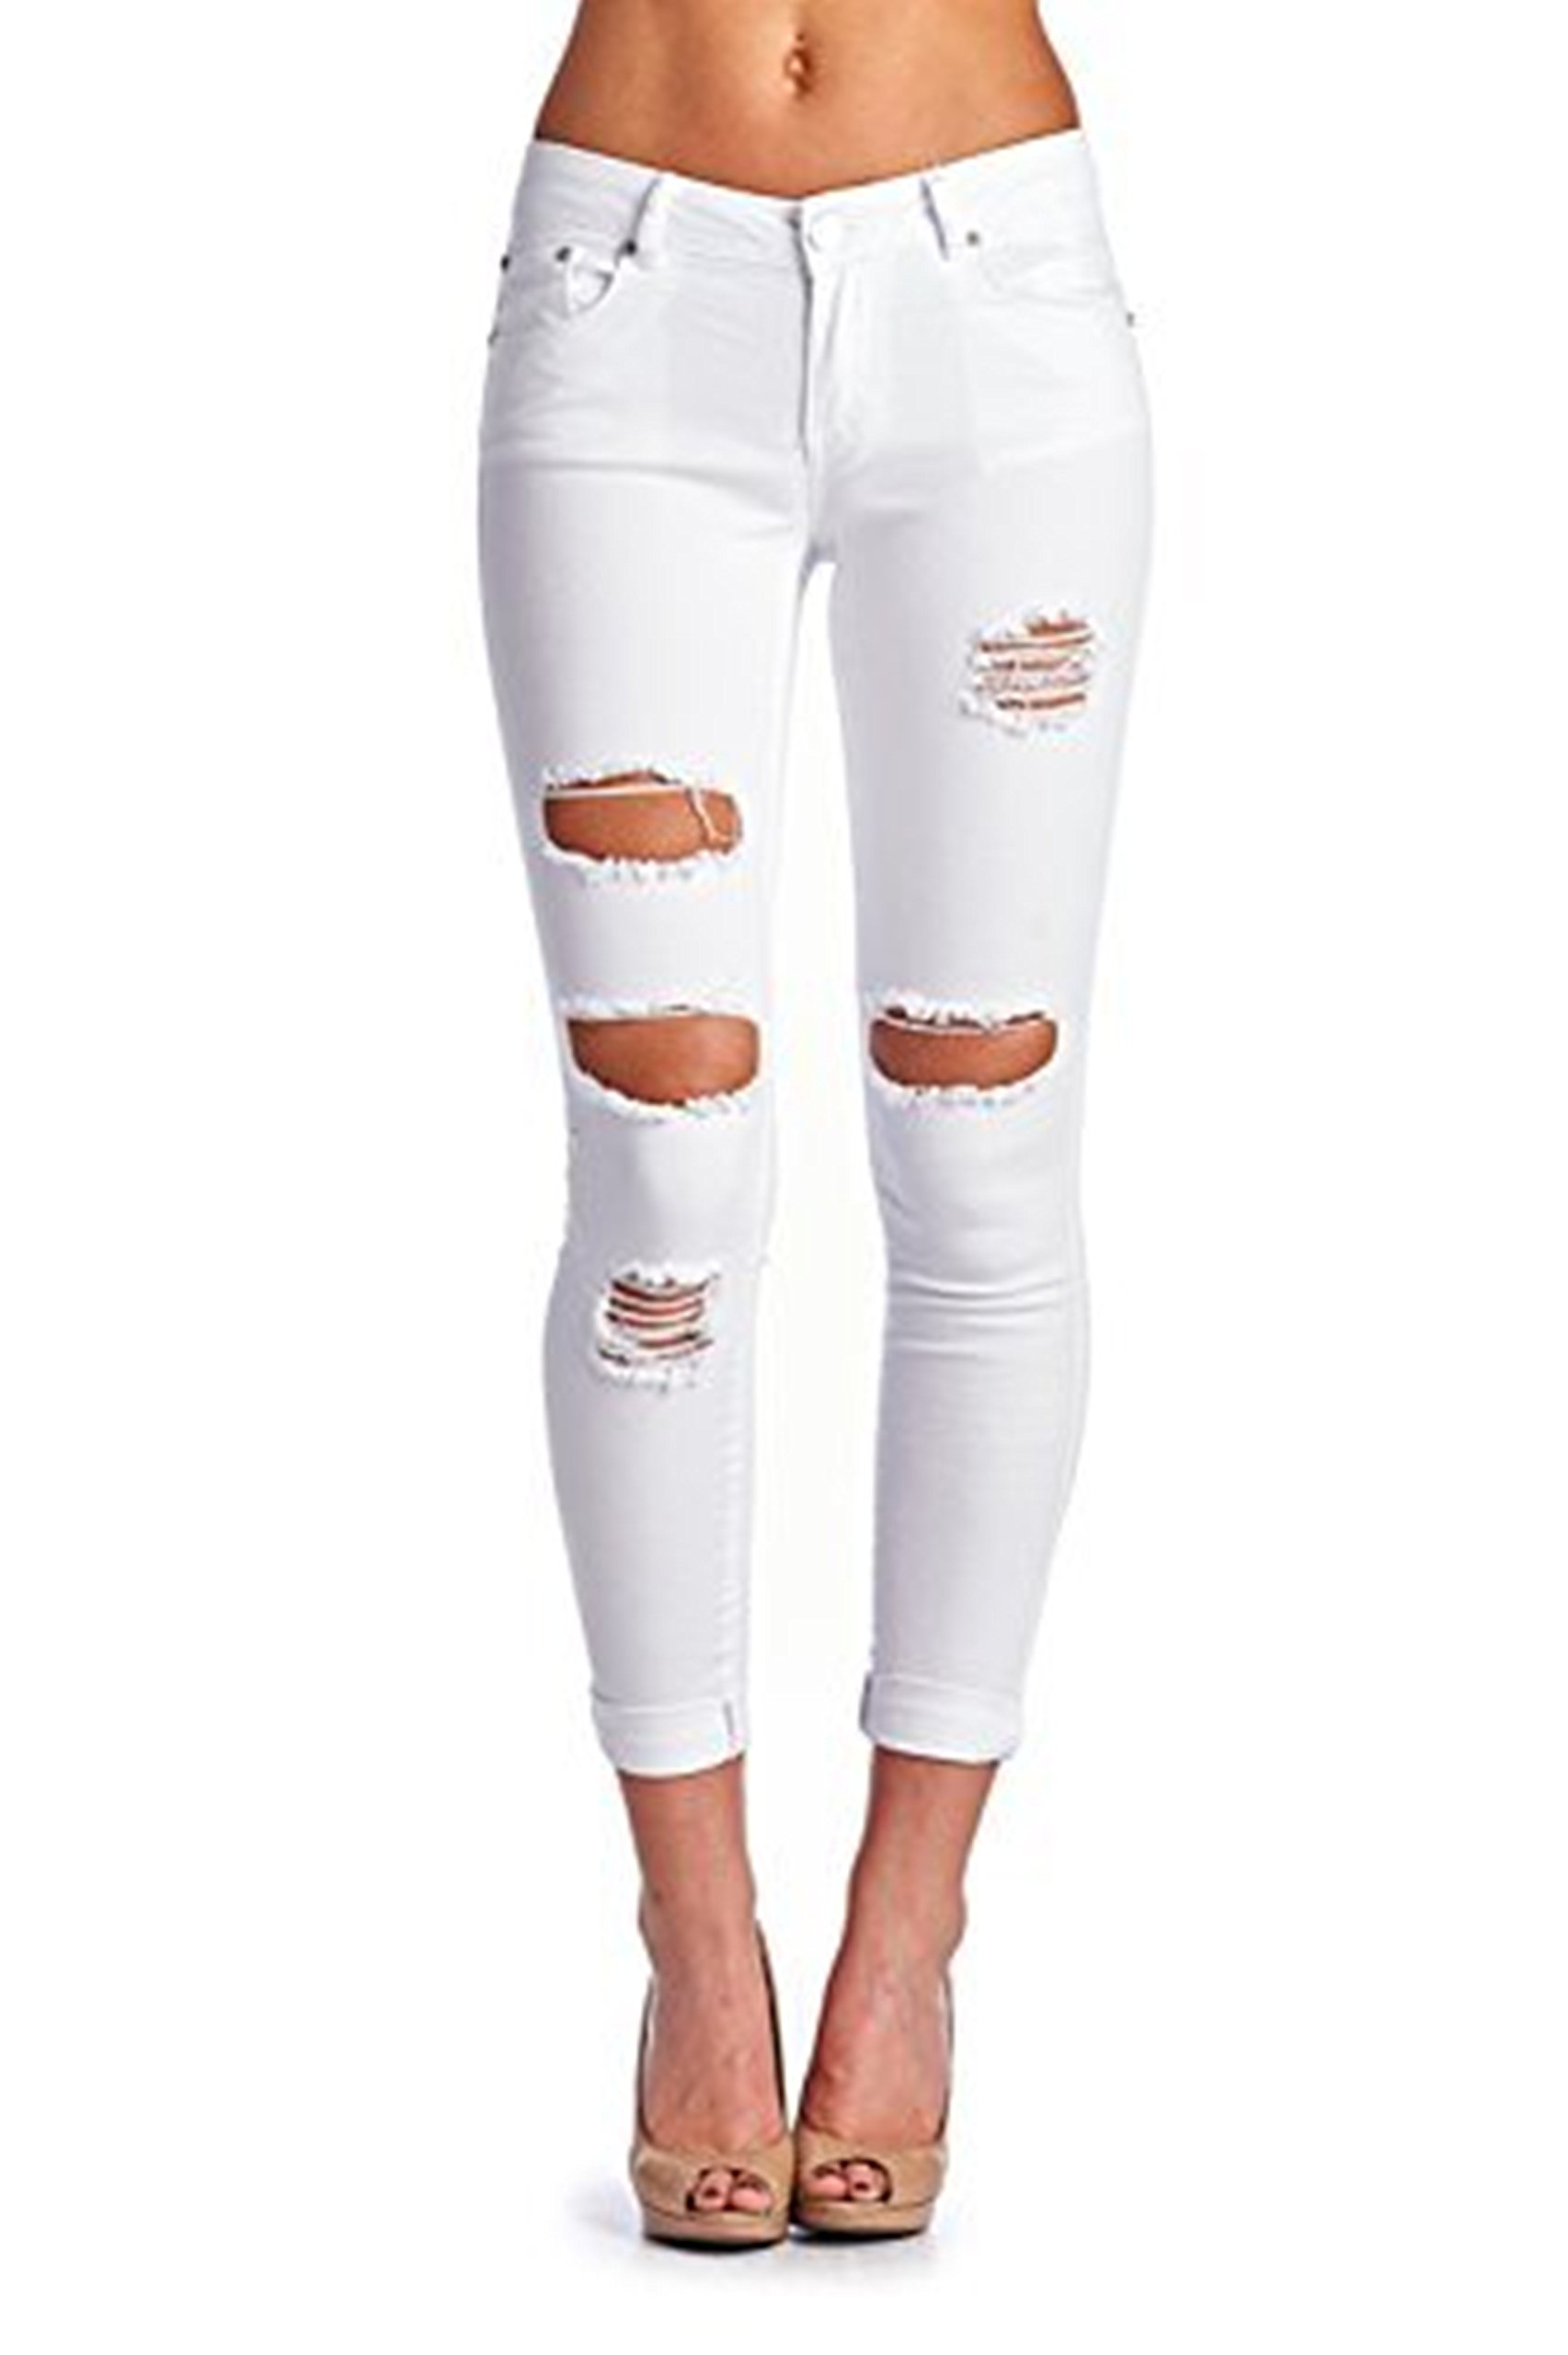 Women's Casual Ripped Holes Skinny Jeans Jeggings Straight Fit Denim Pants (US 12, White 15)